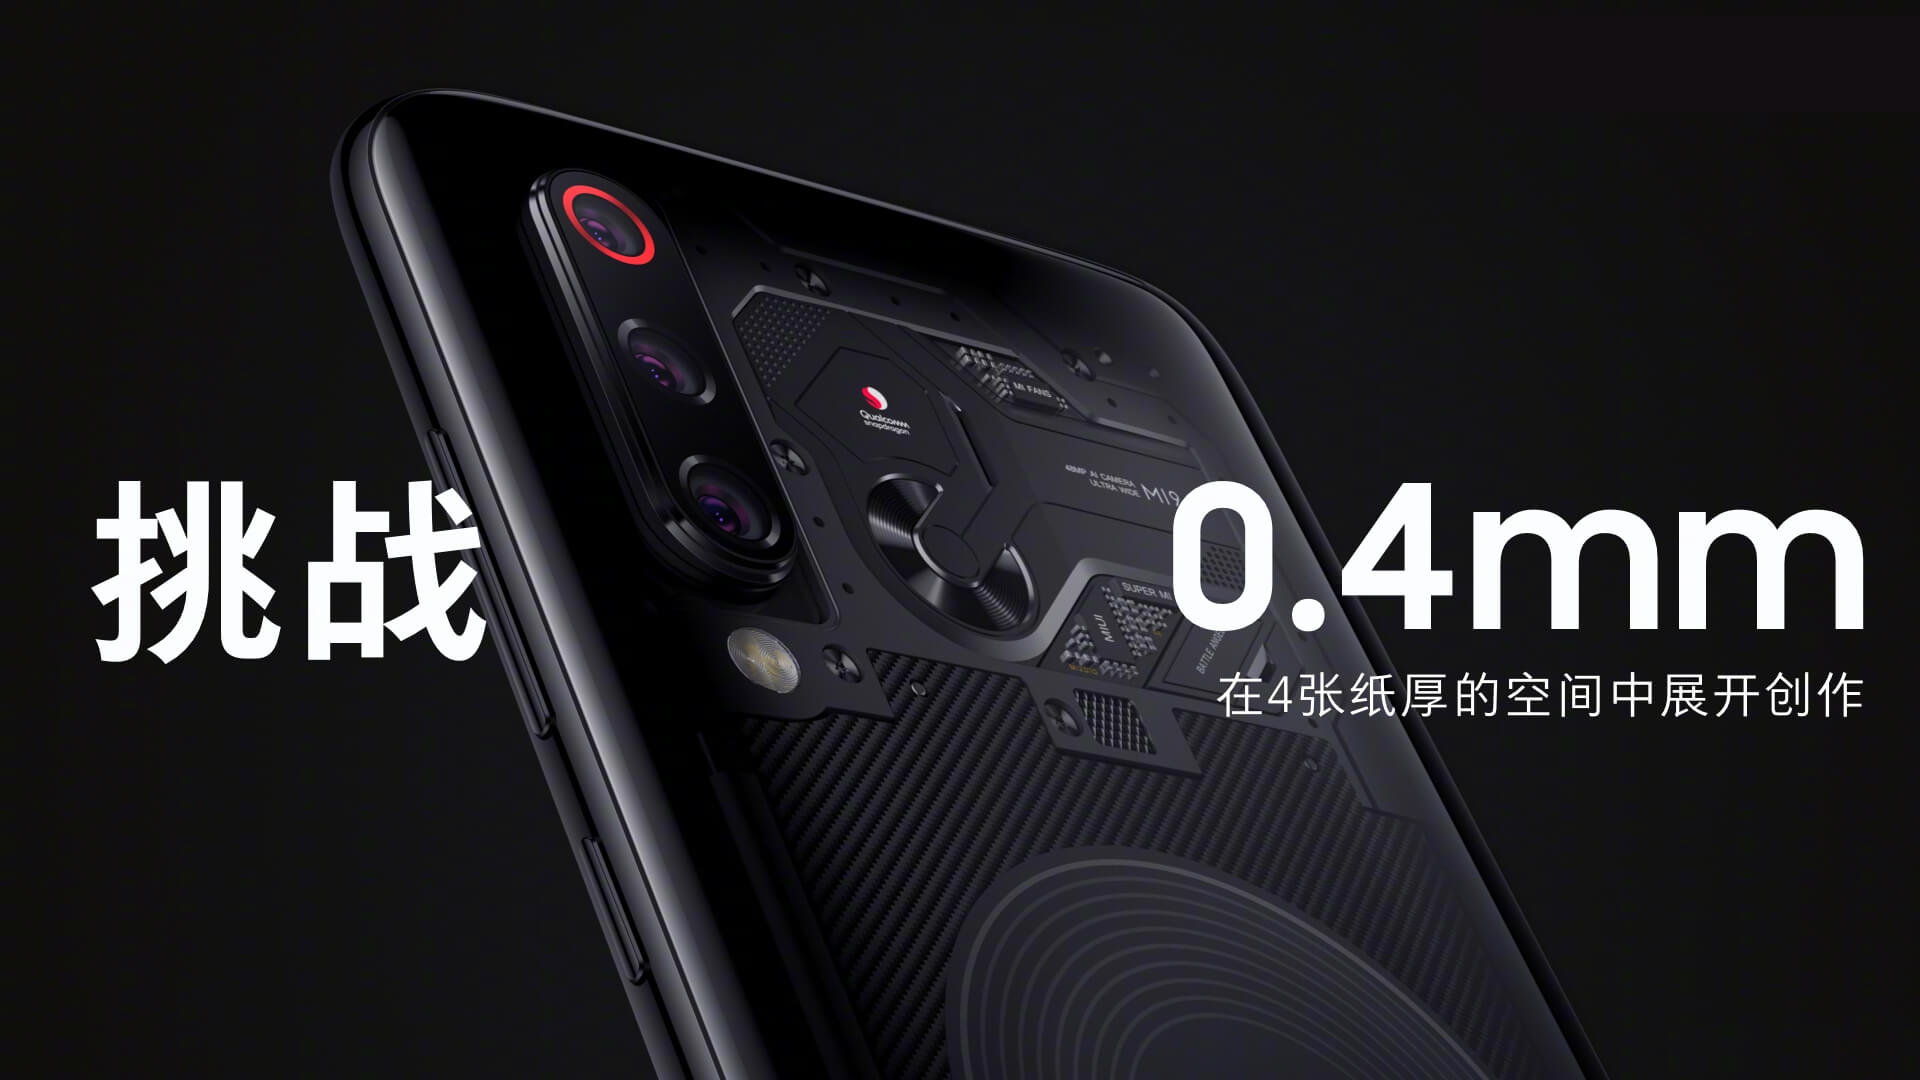 Xiaomi Mi 9: Battle Angel